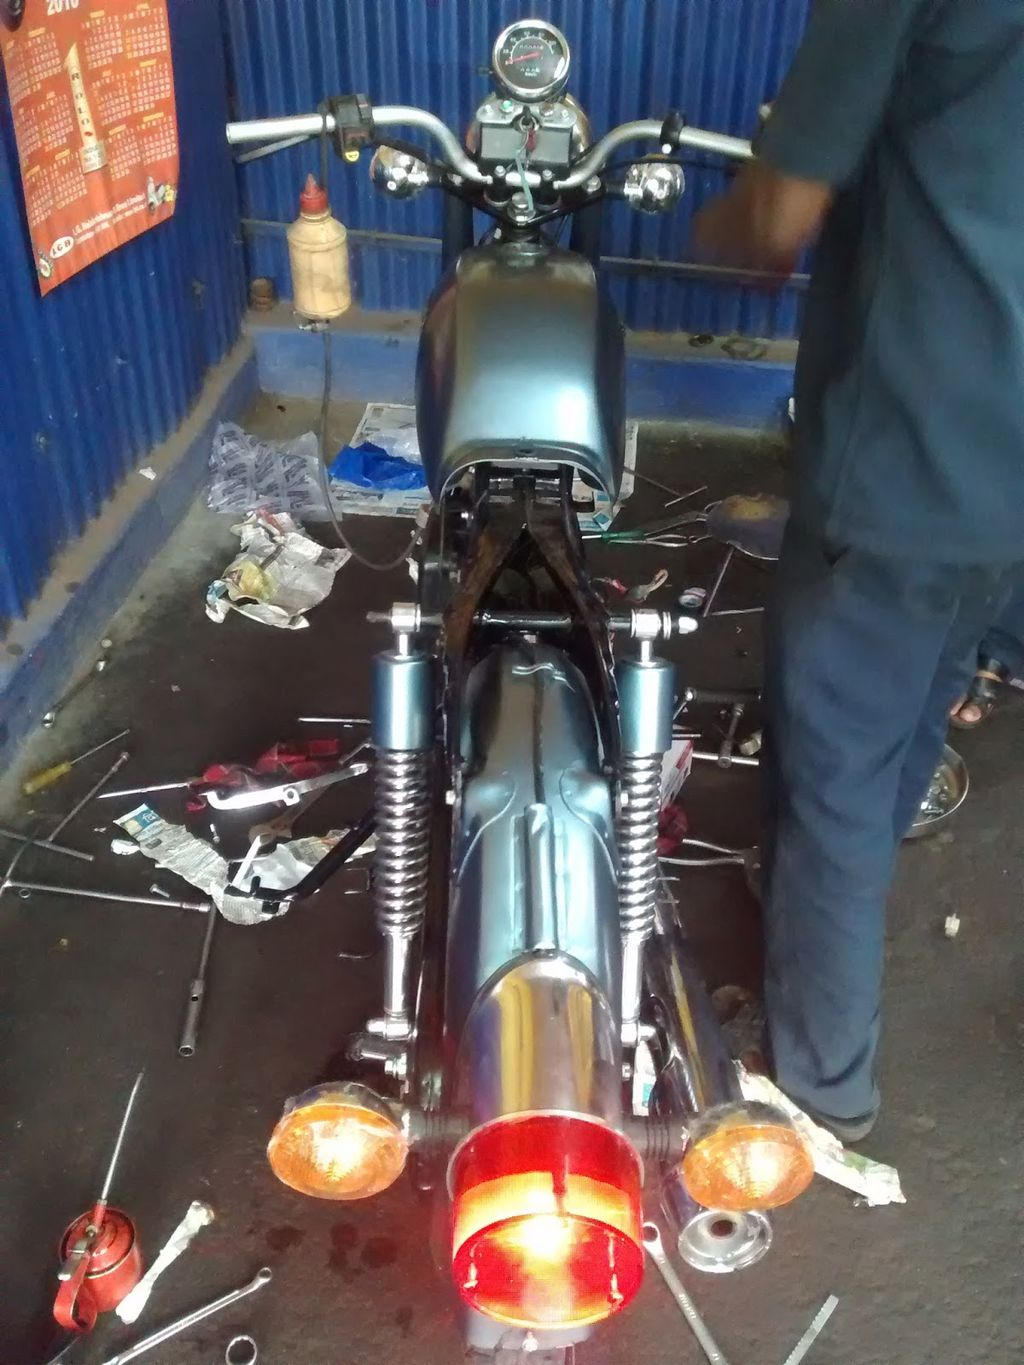 1996 Hero Honda Cd 100ss Restored And Modified With Caf 233